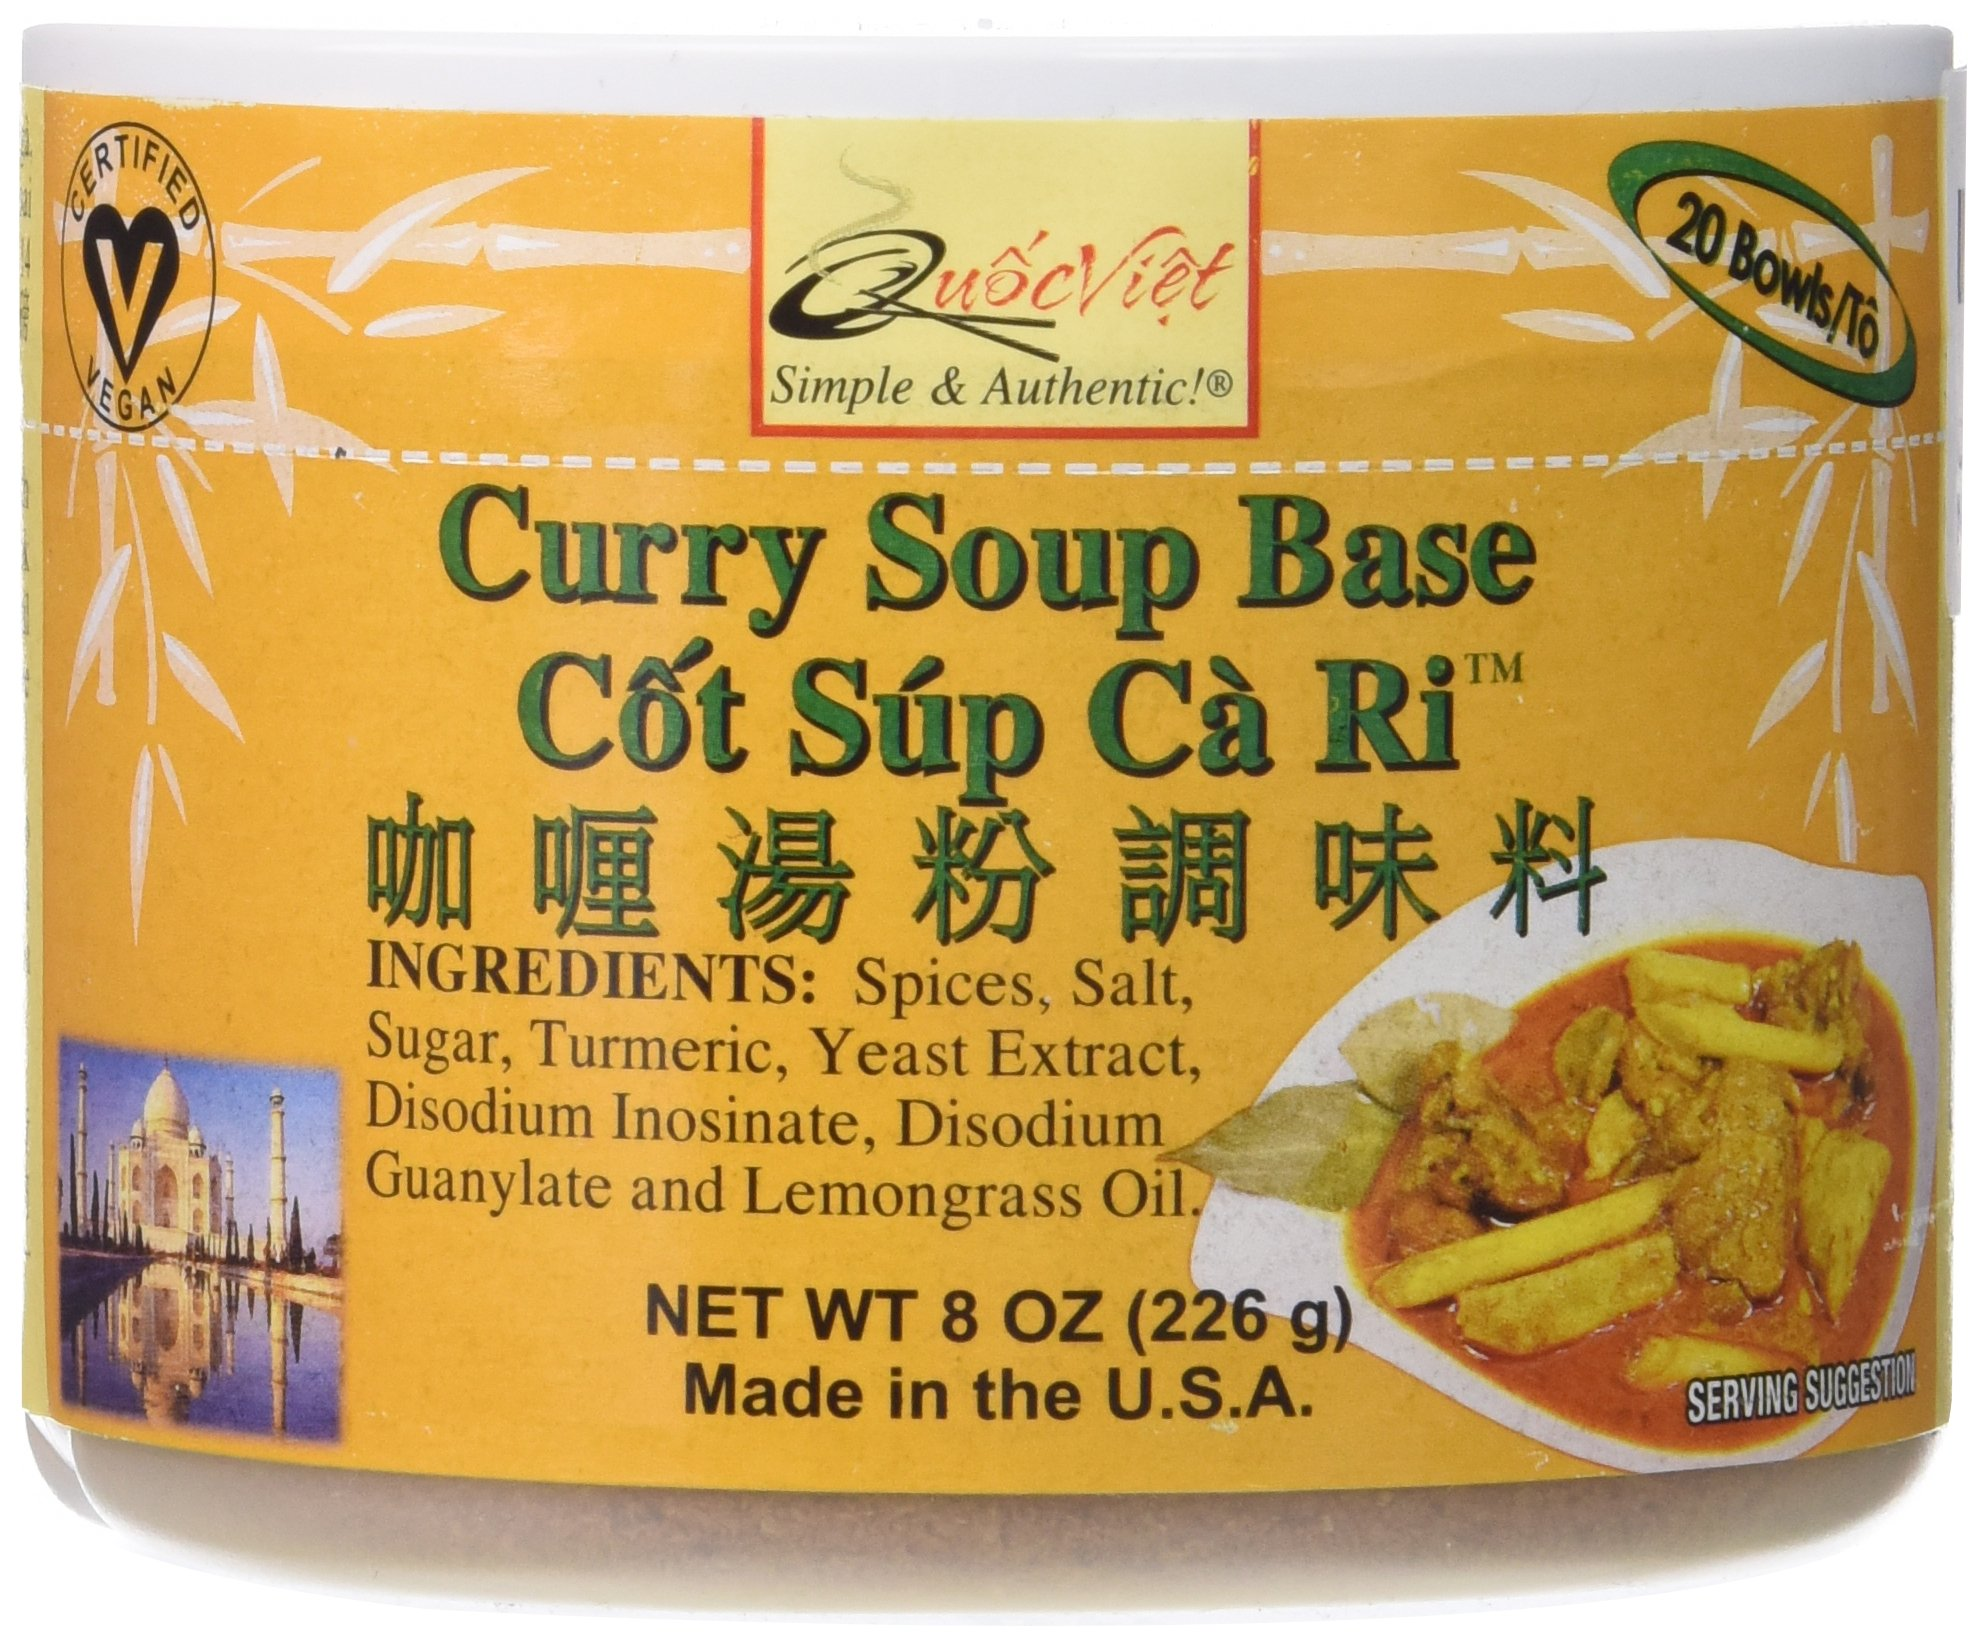 Quoc Viet Foods - Curry Soup Base 8oz Cot Sup Ca Ri Brand